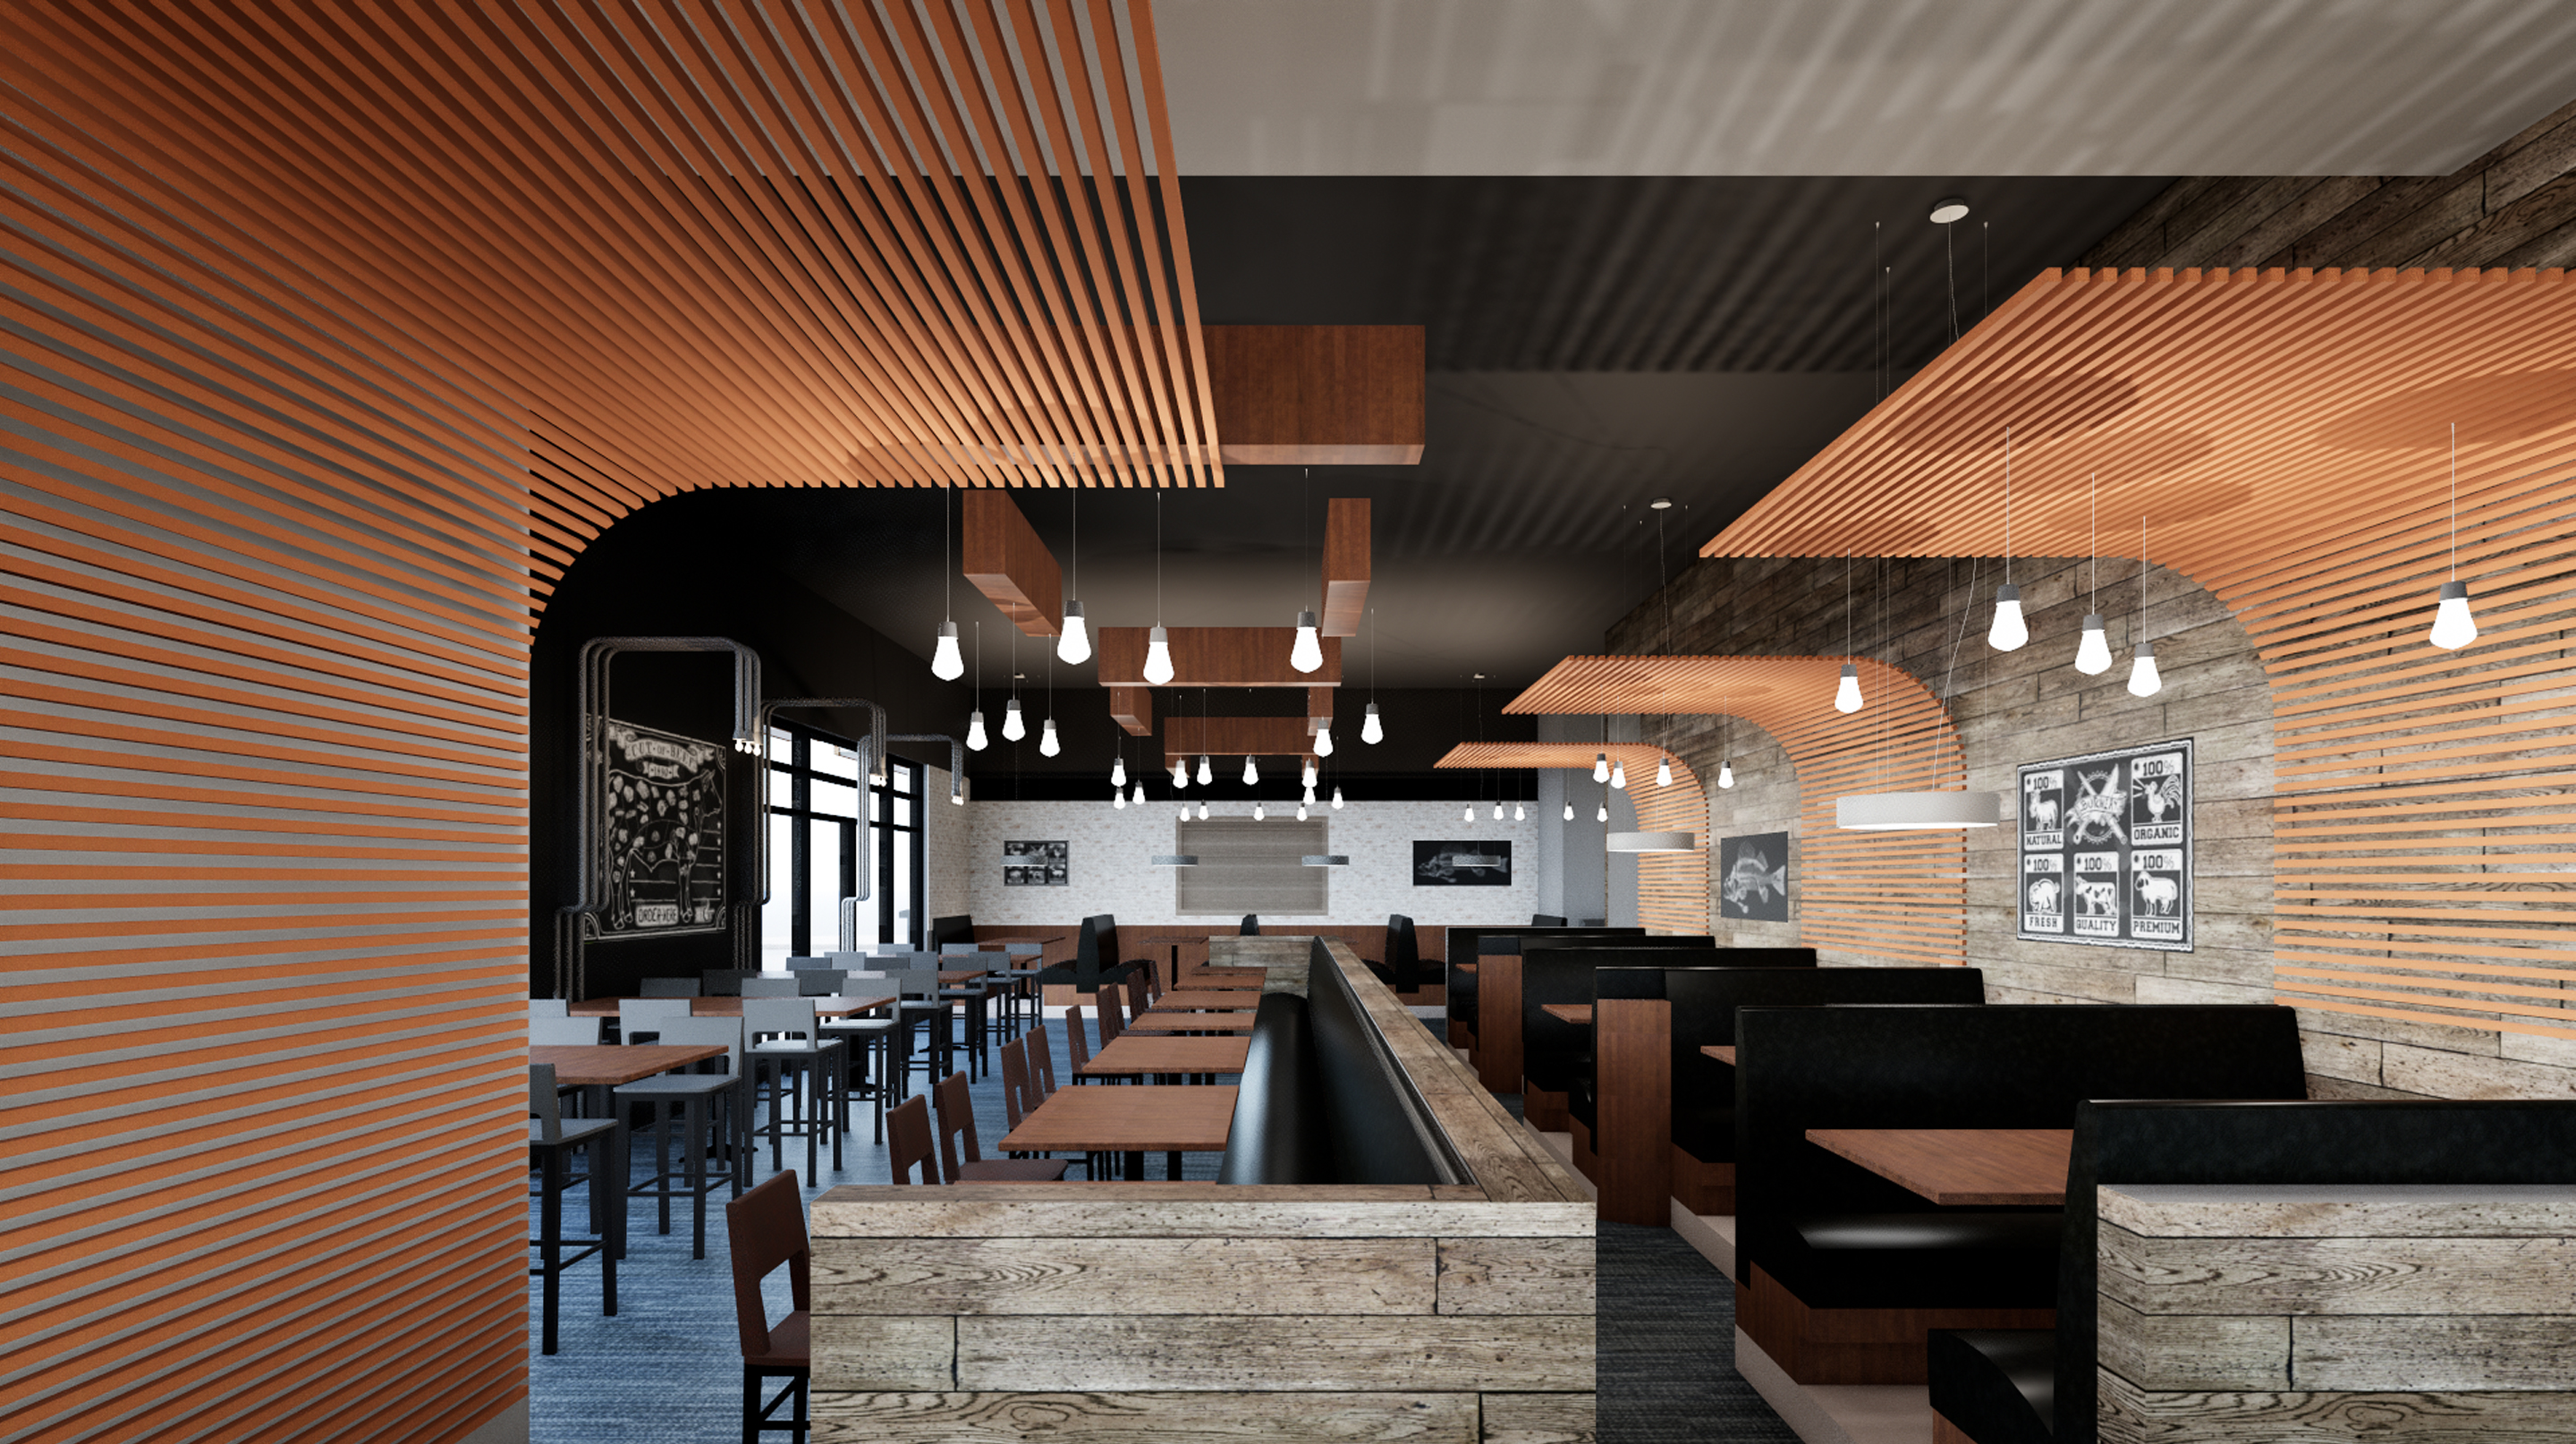 Smokin' Fins Restaurant, in design